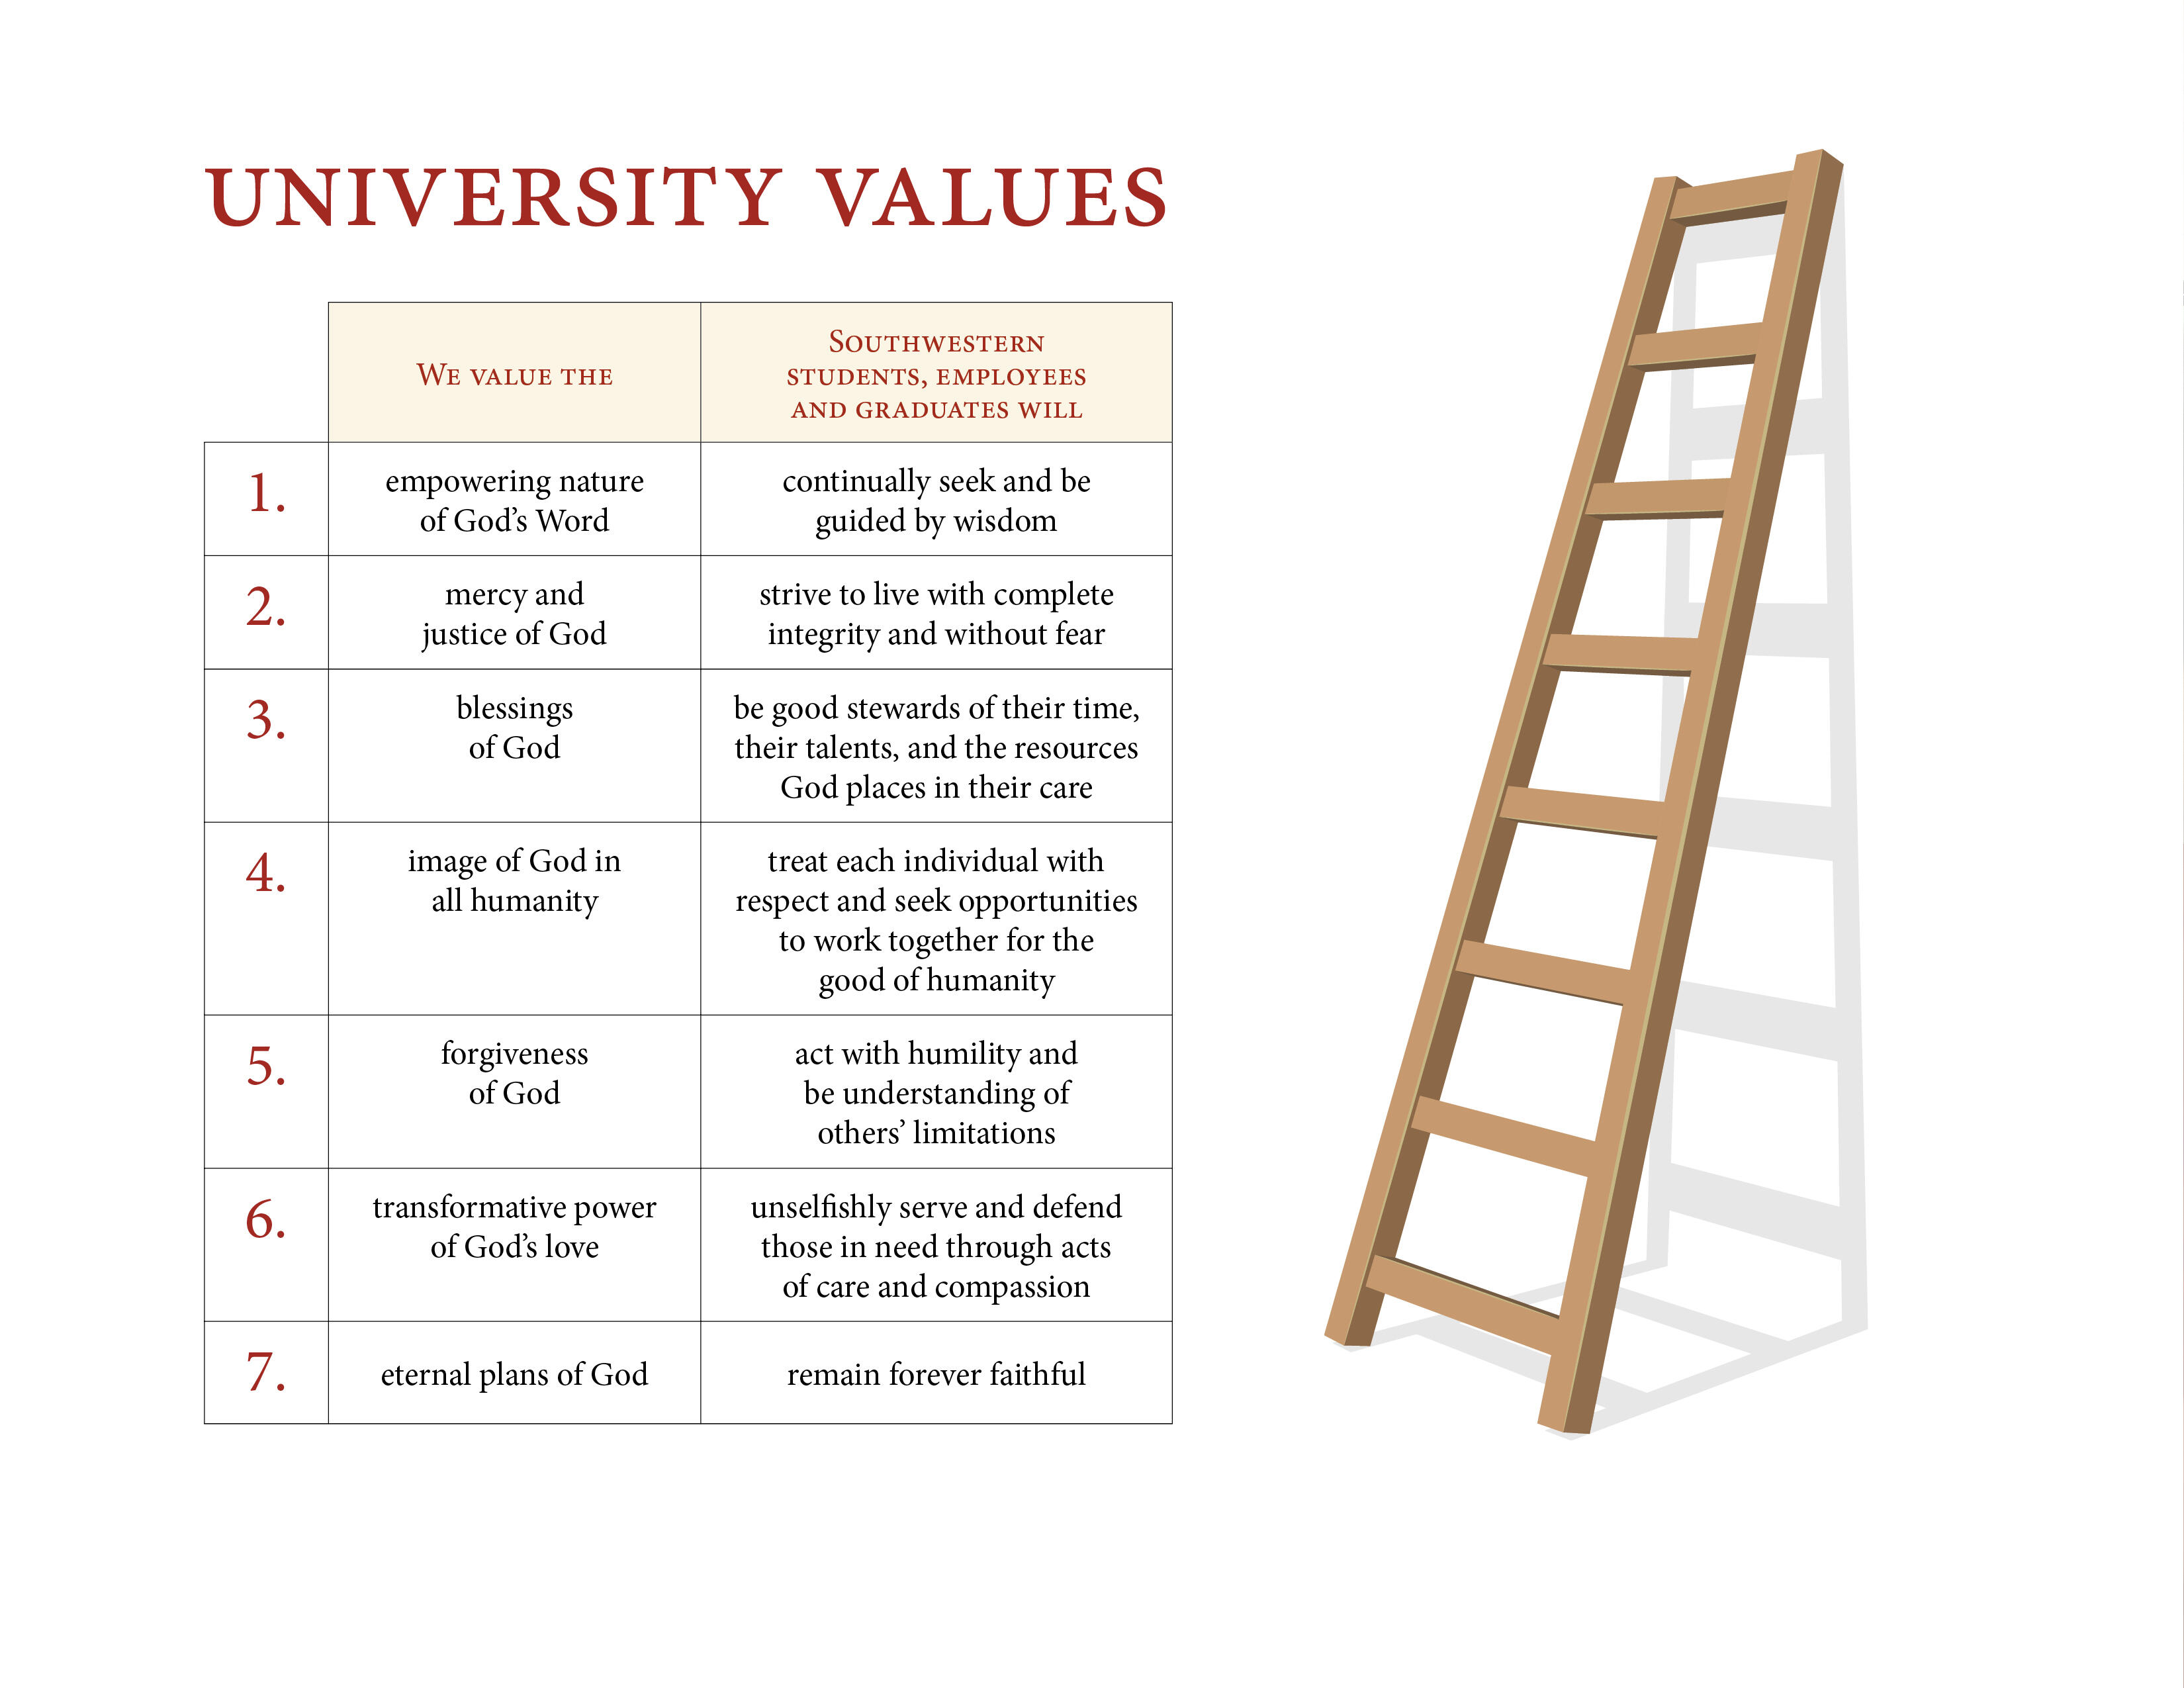 White photo featuring a table stating what is valued and the goals for those who work and attending Southwestern Adventist University